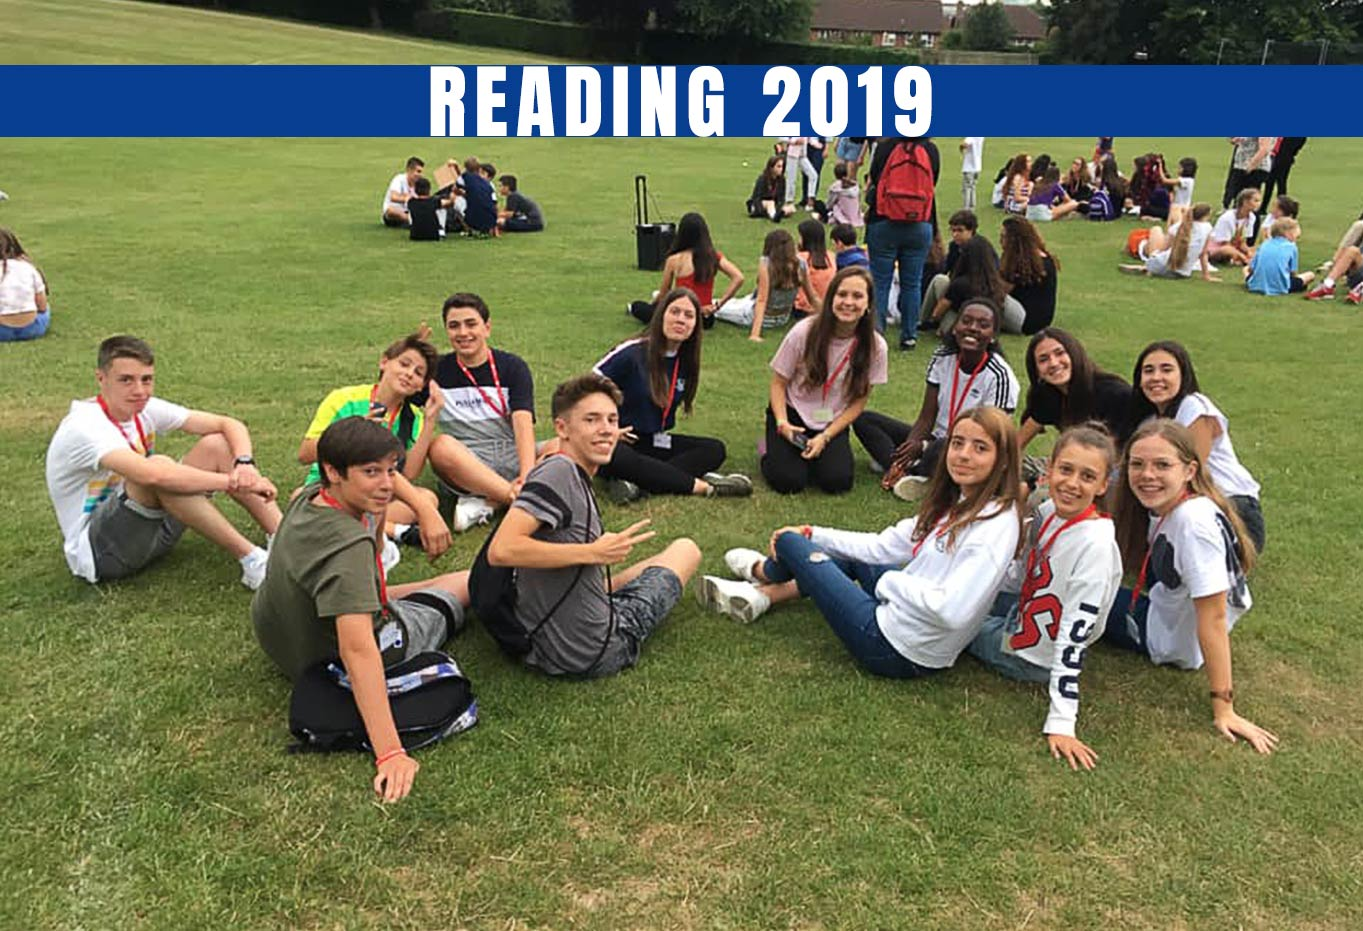 Program Review: READING 2019